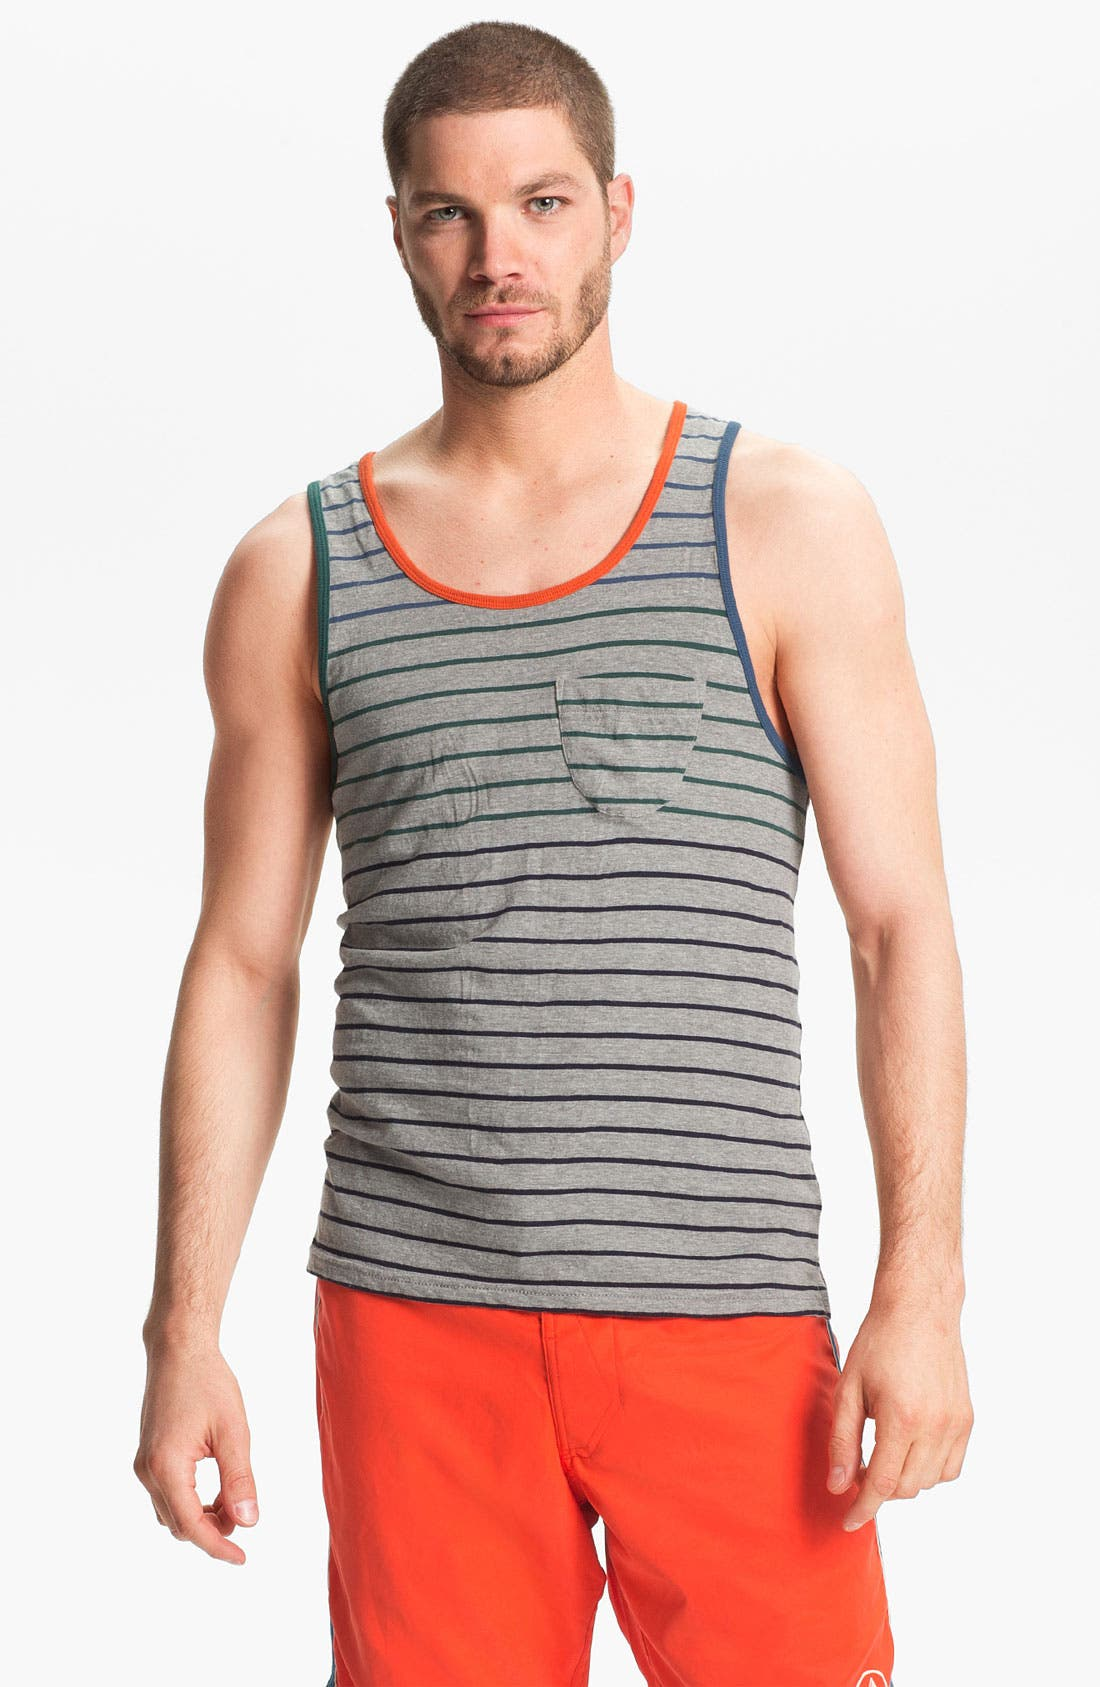 Main Image - Burkman Bros Stripe Tank Top